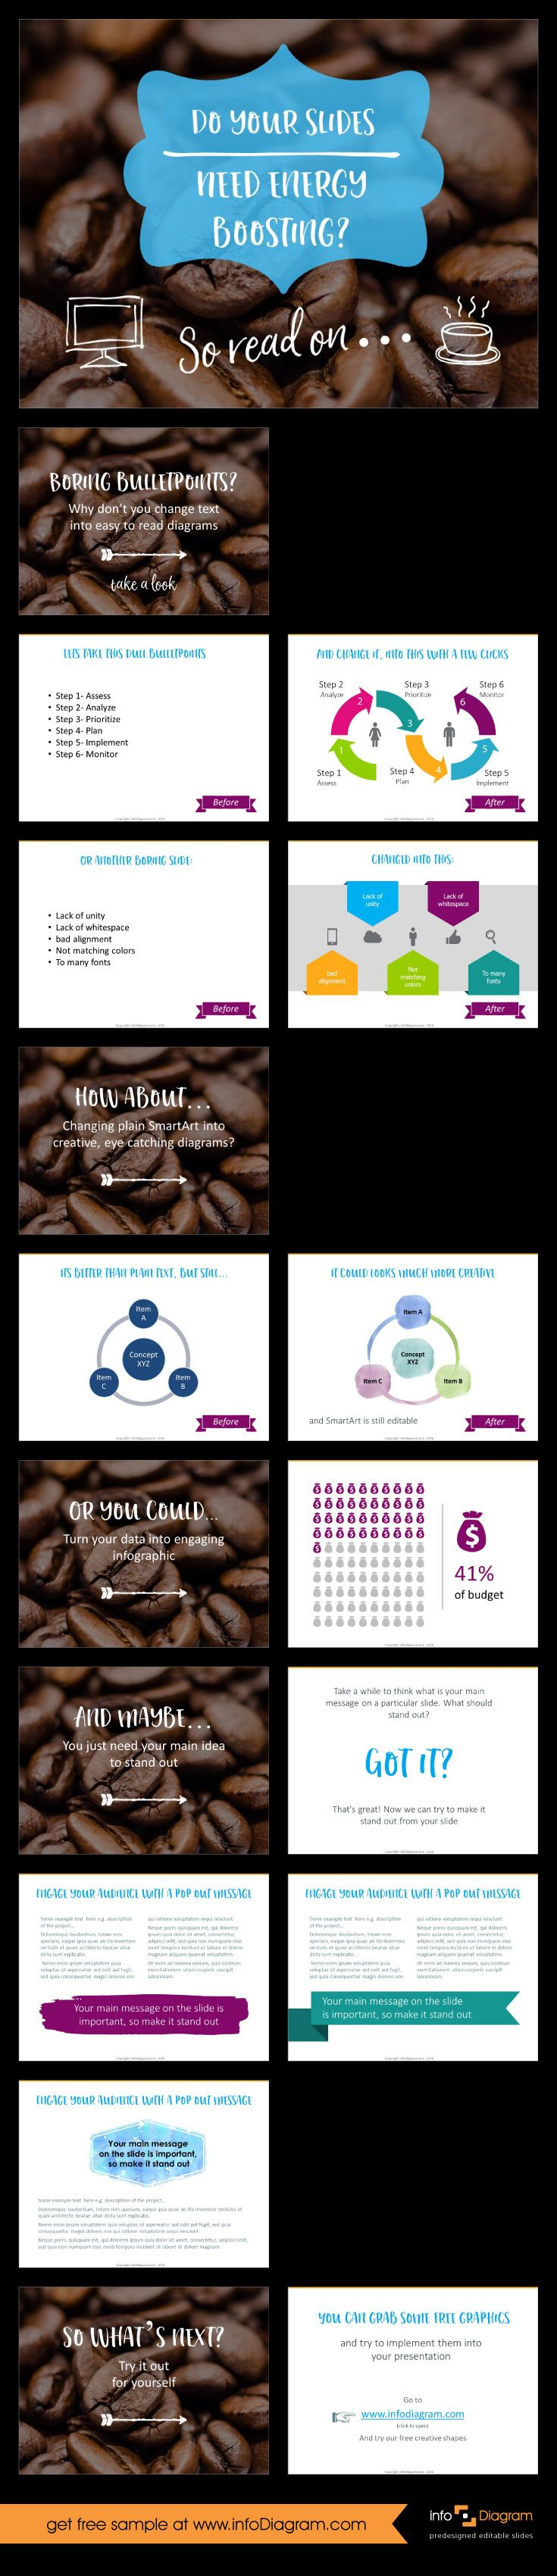 Boring presentation? To many bulletpoints? Do your slides need energy boosting? See what to change and how to get creative look